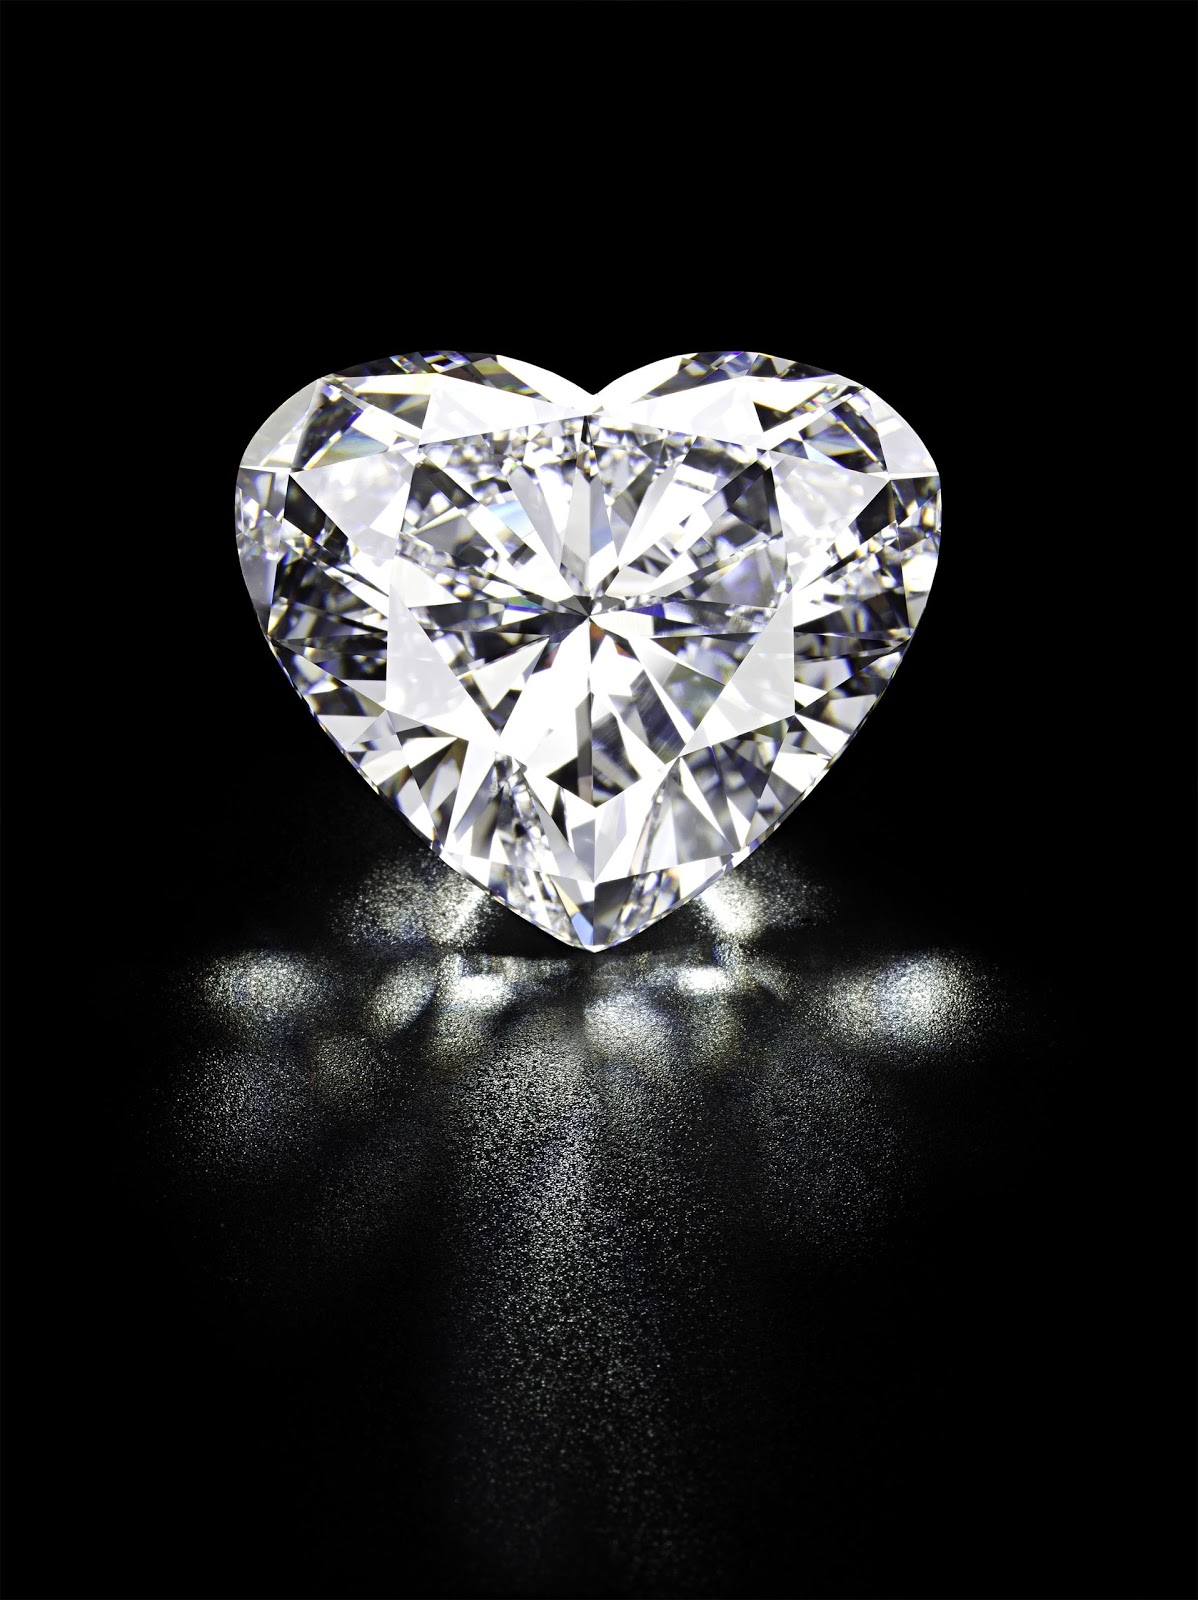 of 56.15 cts which sold for US$ 10,946,422,